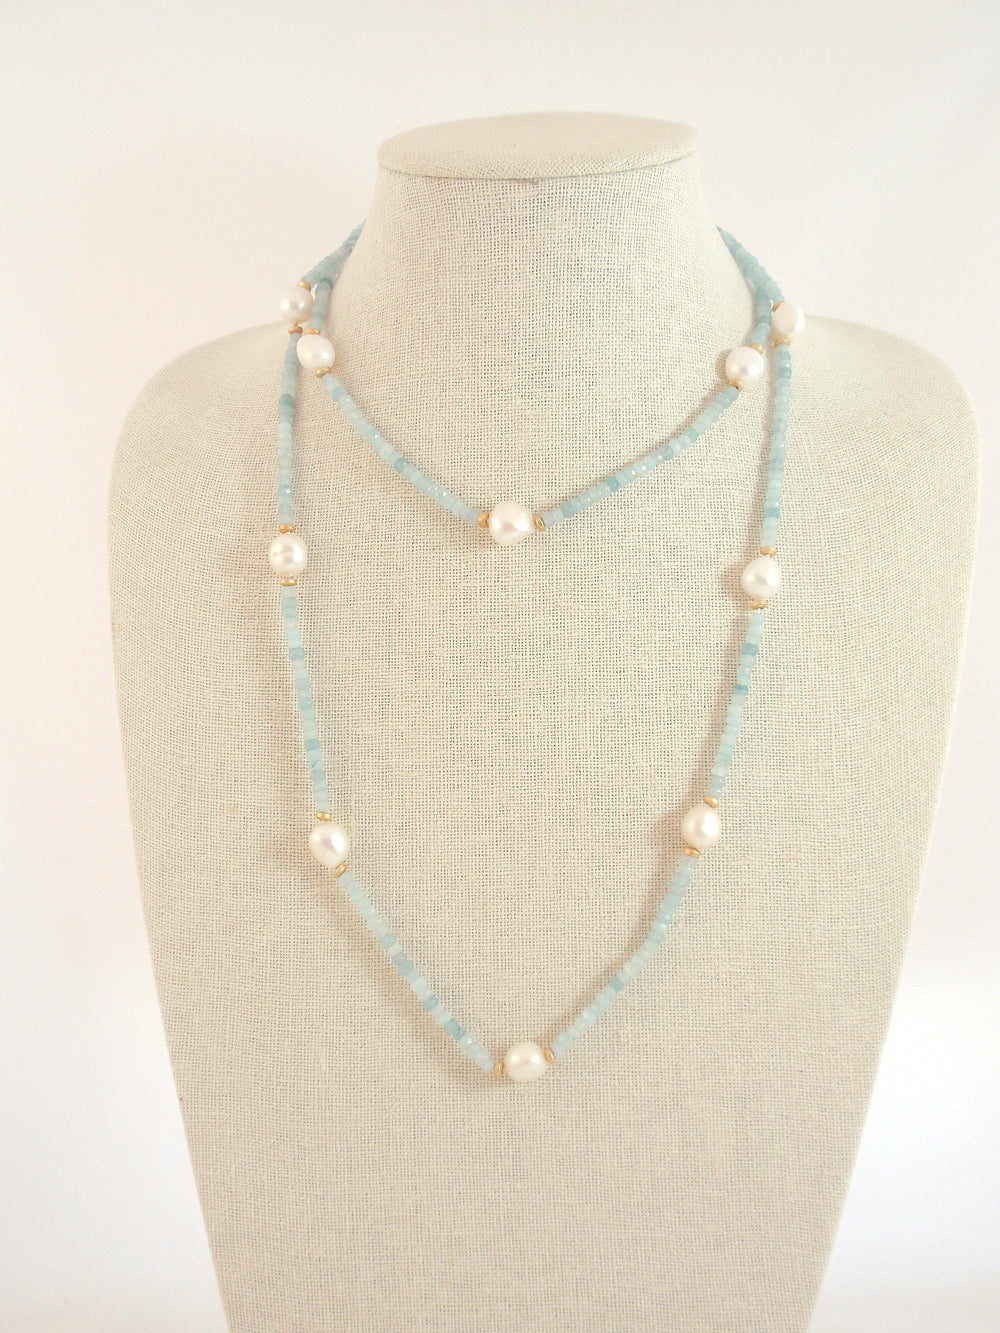 The Island Pearl Aqua Jade and Freshwater Pearls